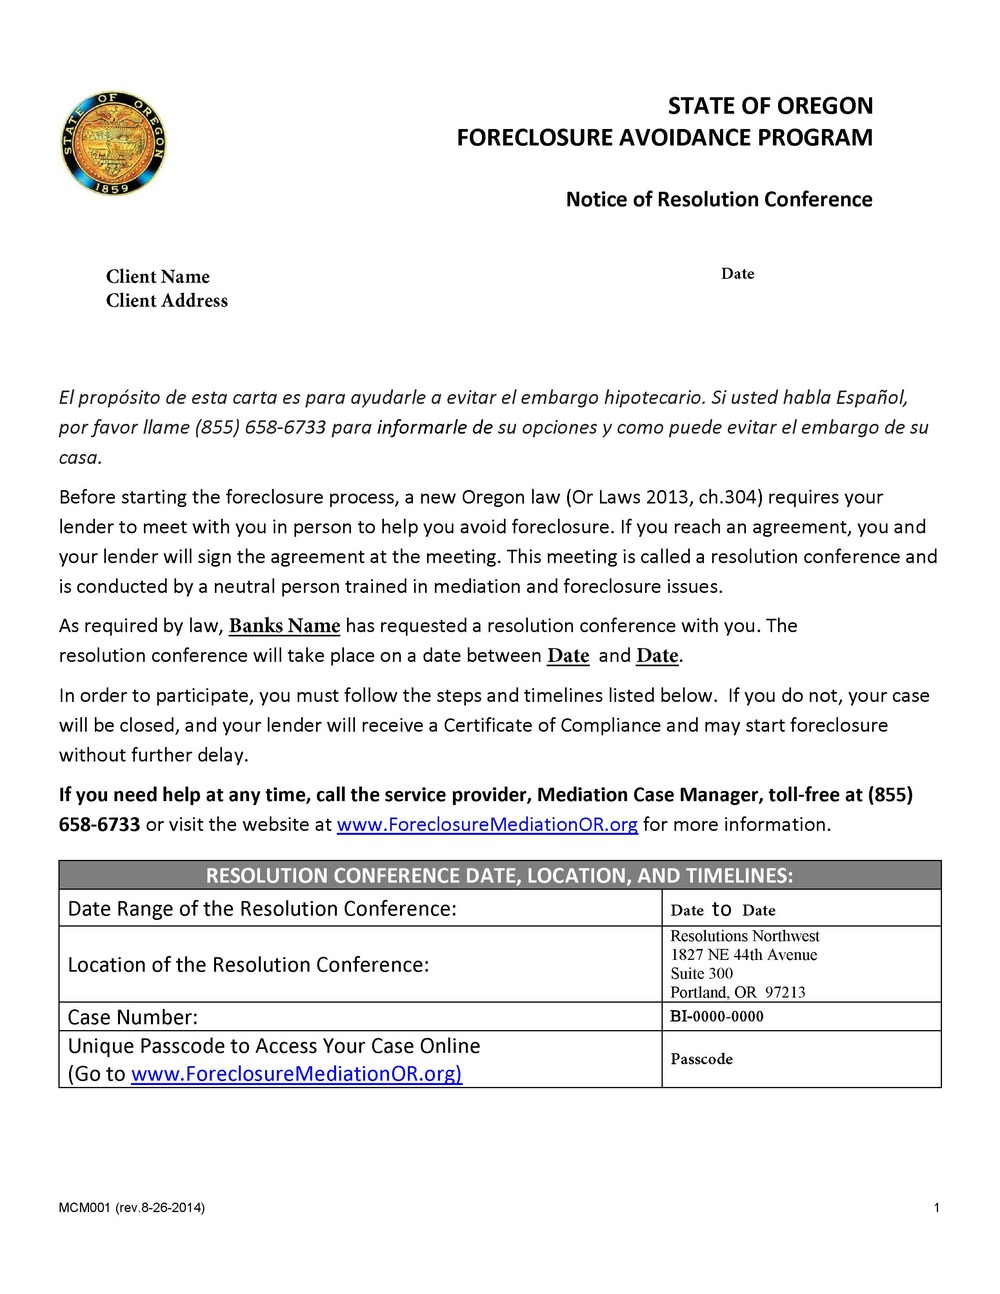 Sample Notice of Resolution Conference letter